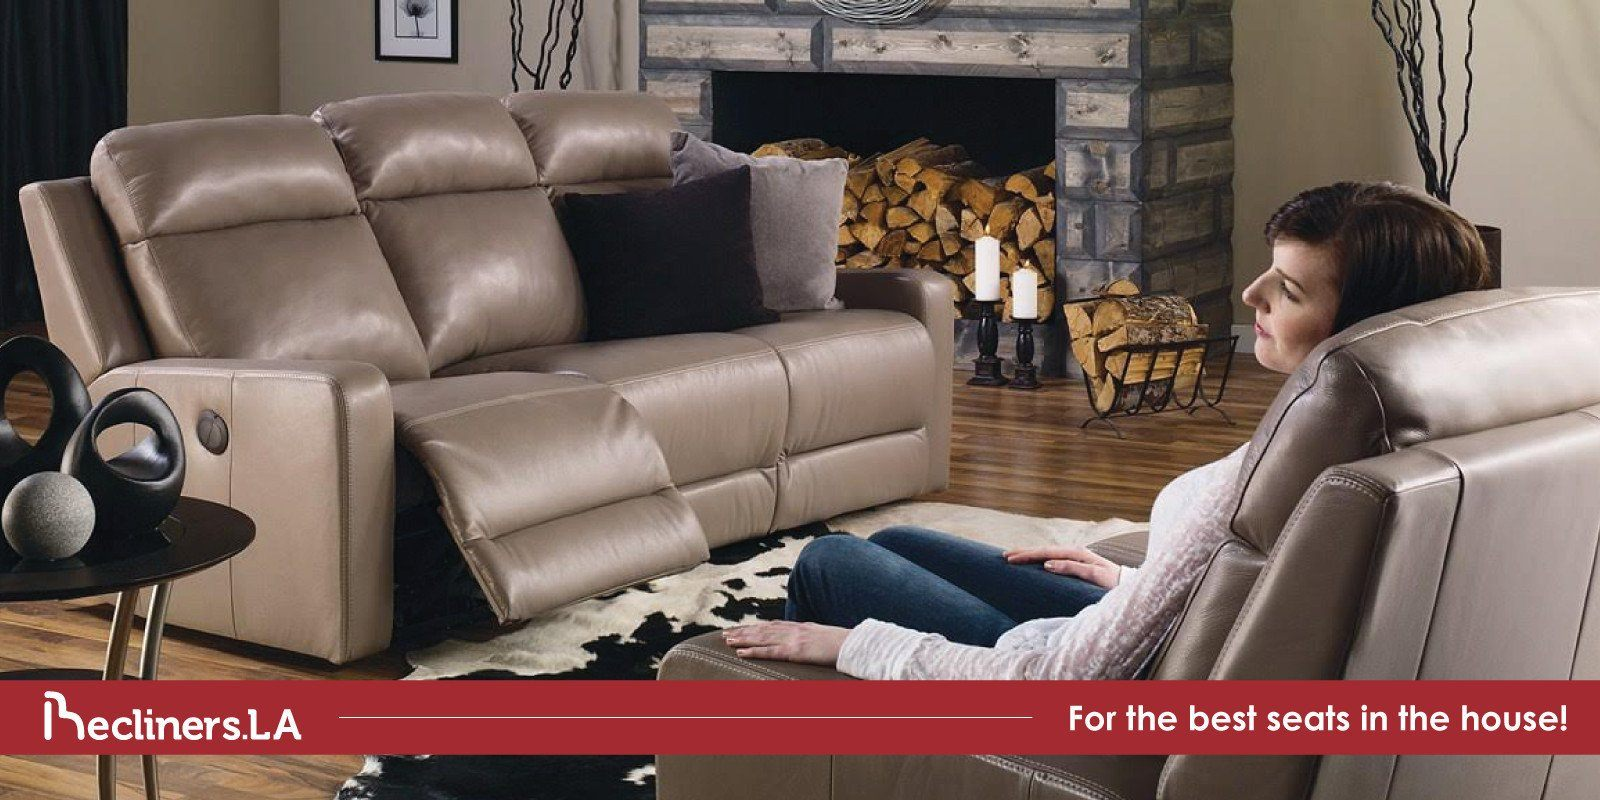 Recliners.LA - Stressless by Ekornes